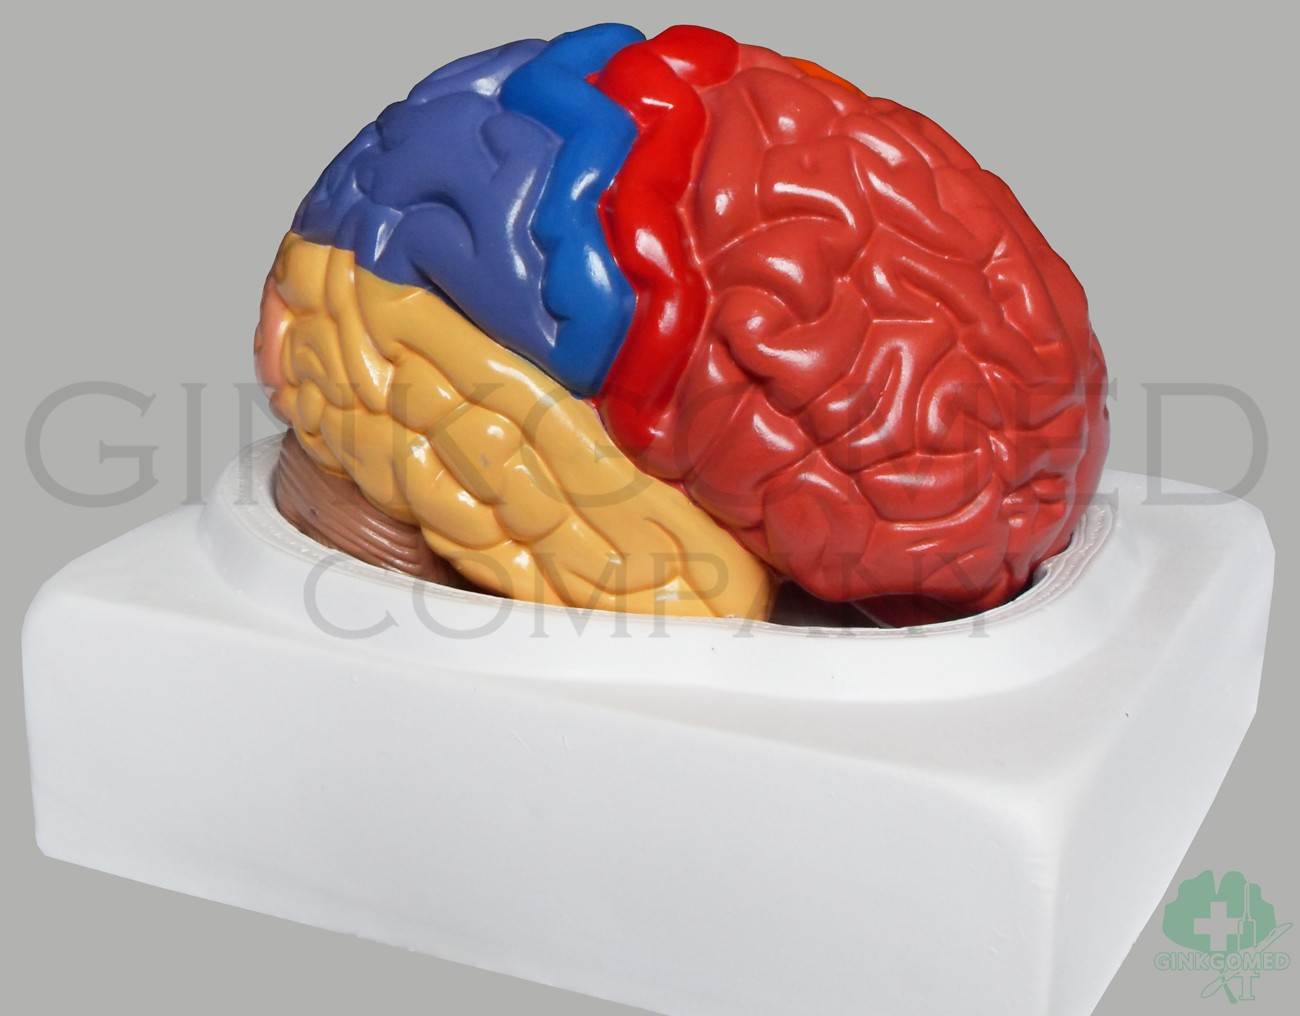 GM-080011 Functional Areas of Brain - Head, Neck, Nervous System and ...